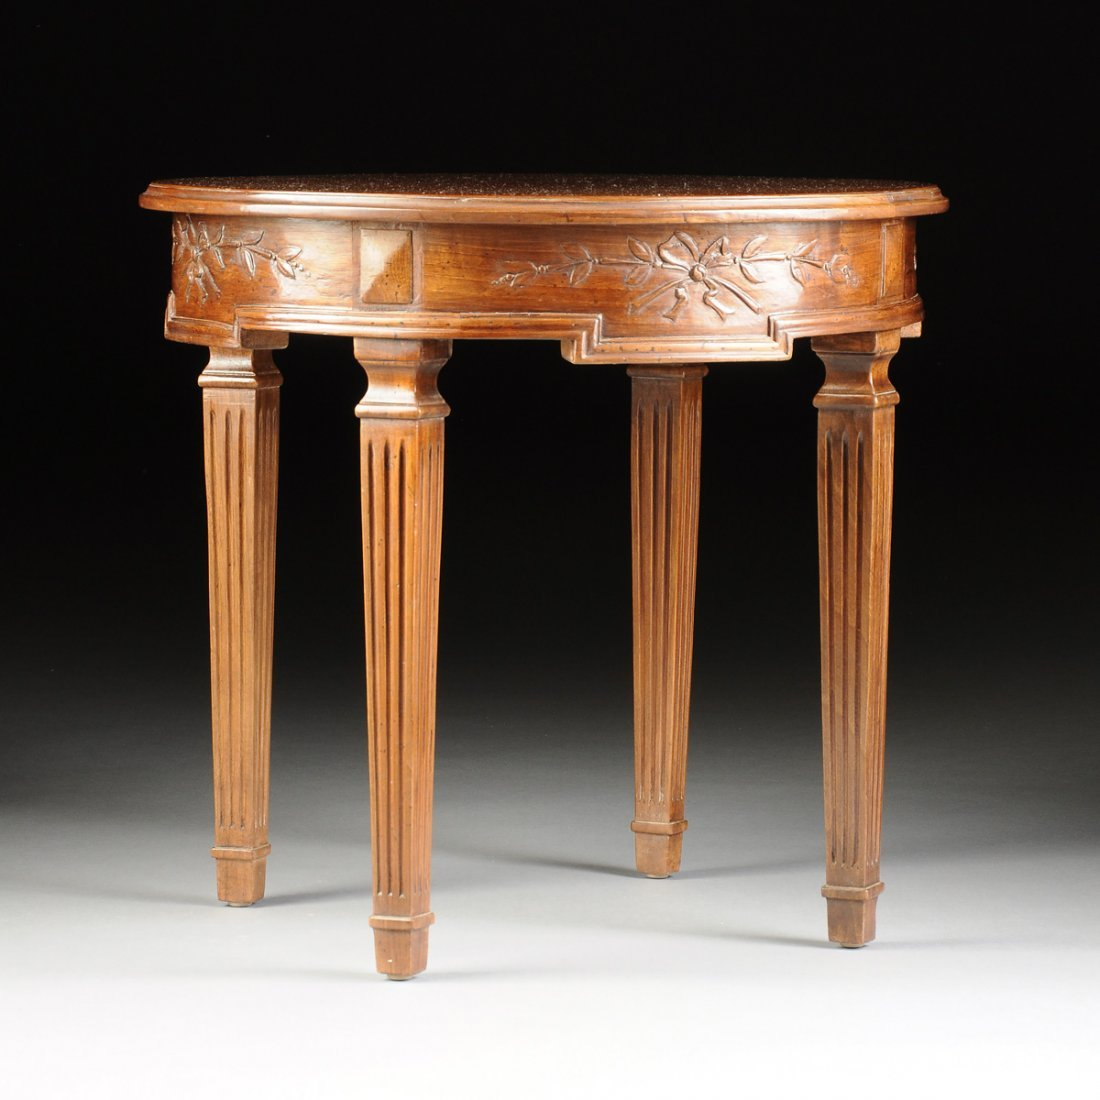 AN ITALIAN NEOCLASSICAL STYLE CARVED WALNUT OCCASIONAL